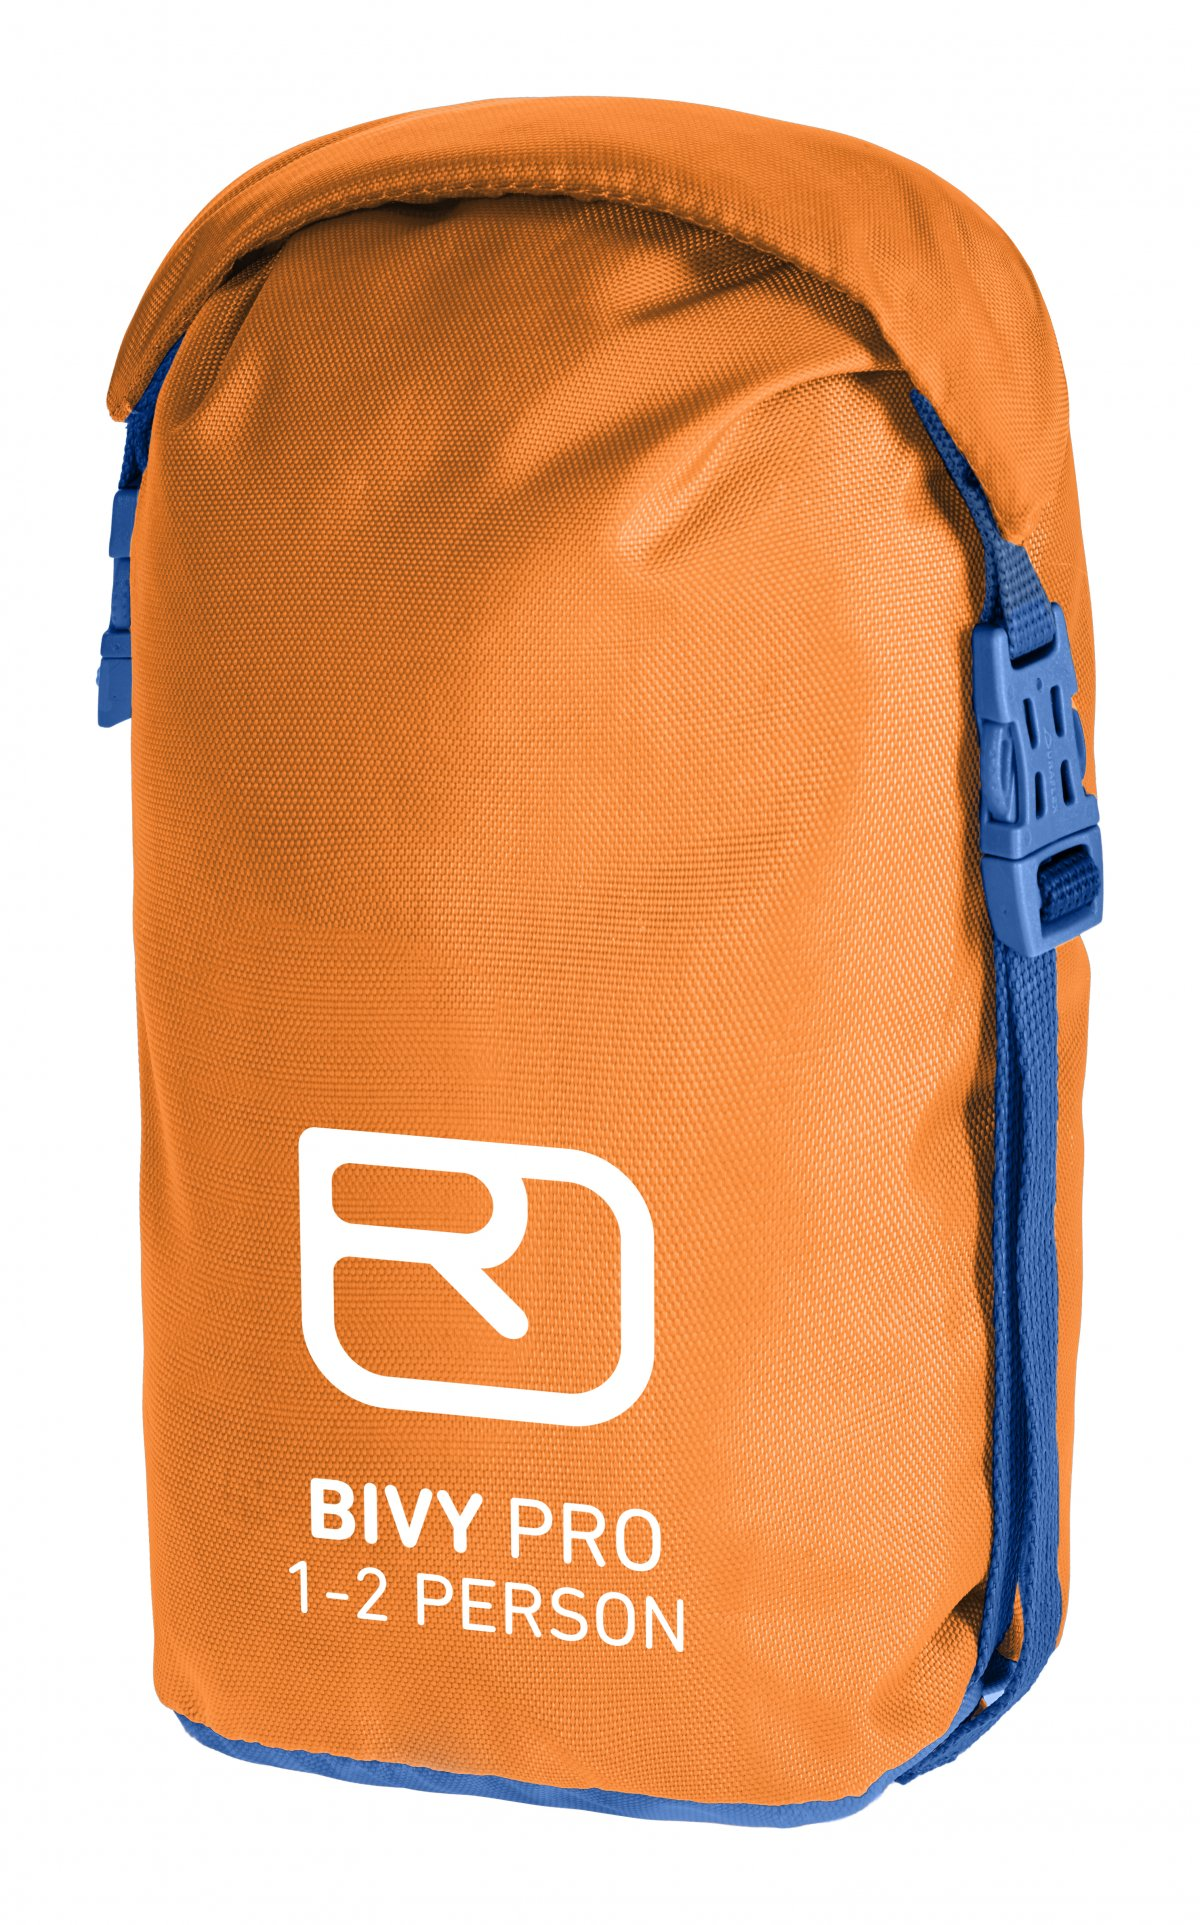 Compressible stow away bag with rolltop - Ortovox Bivy Bag Pro